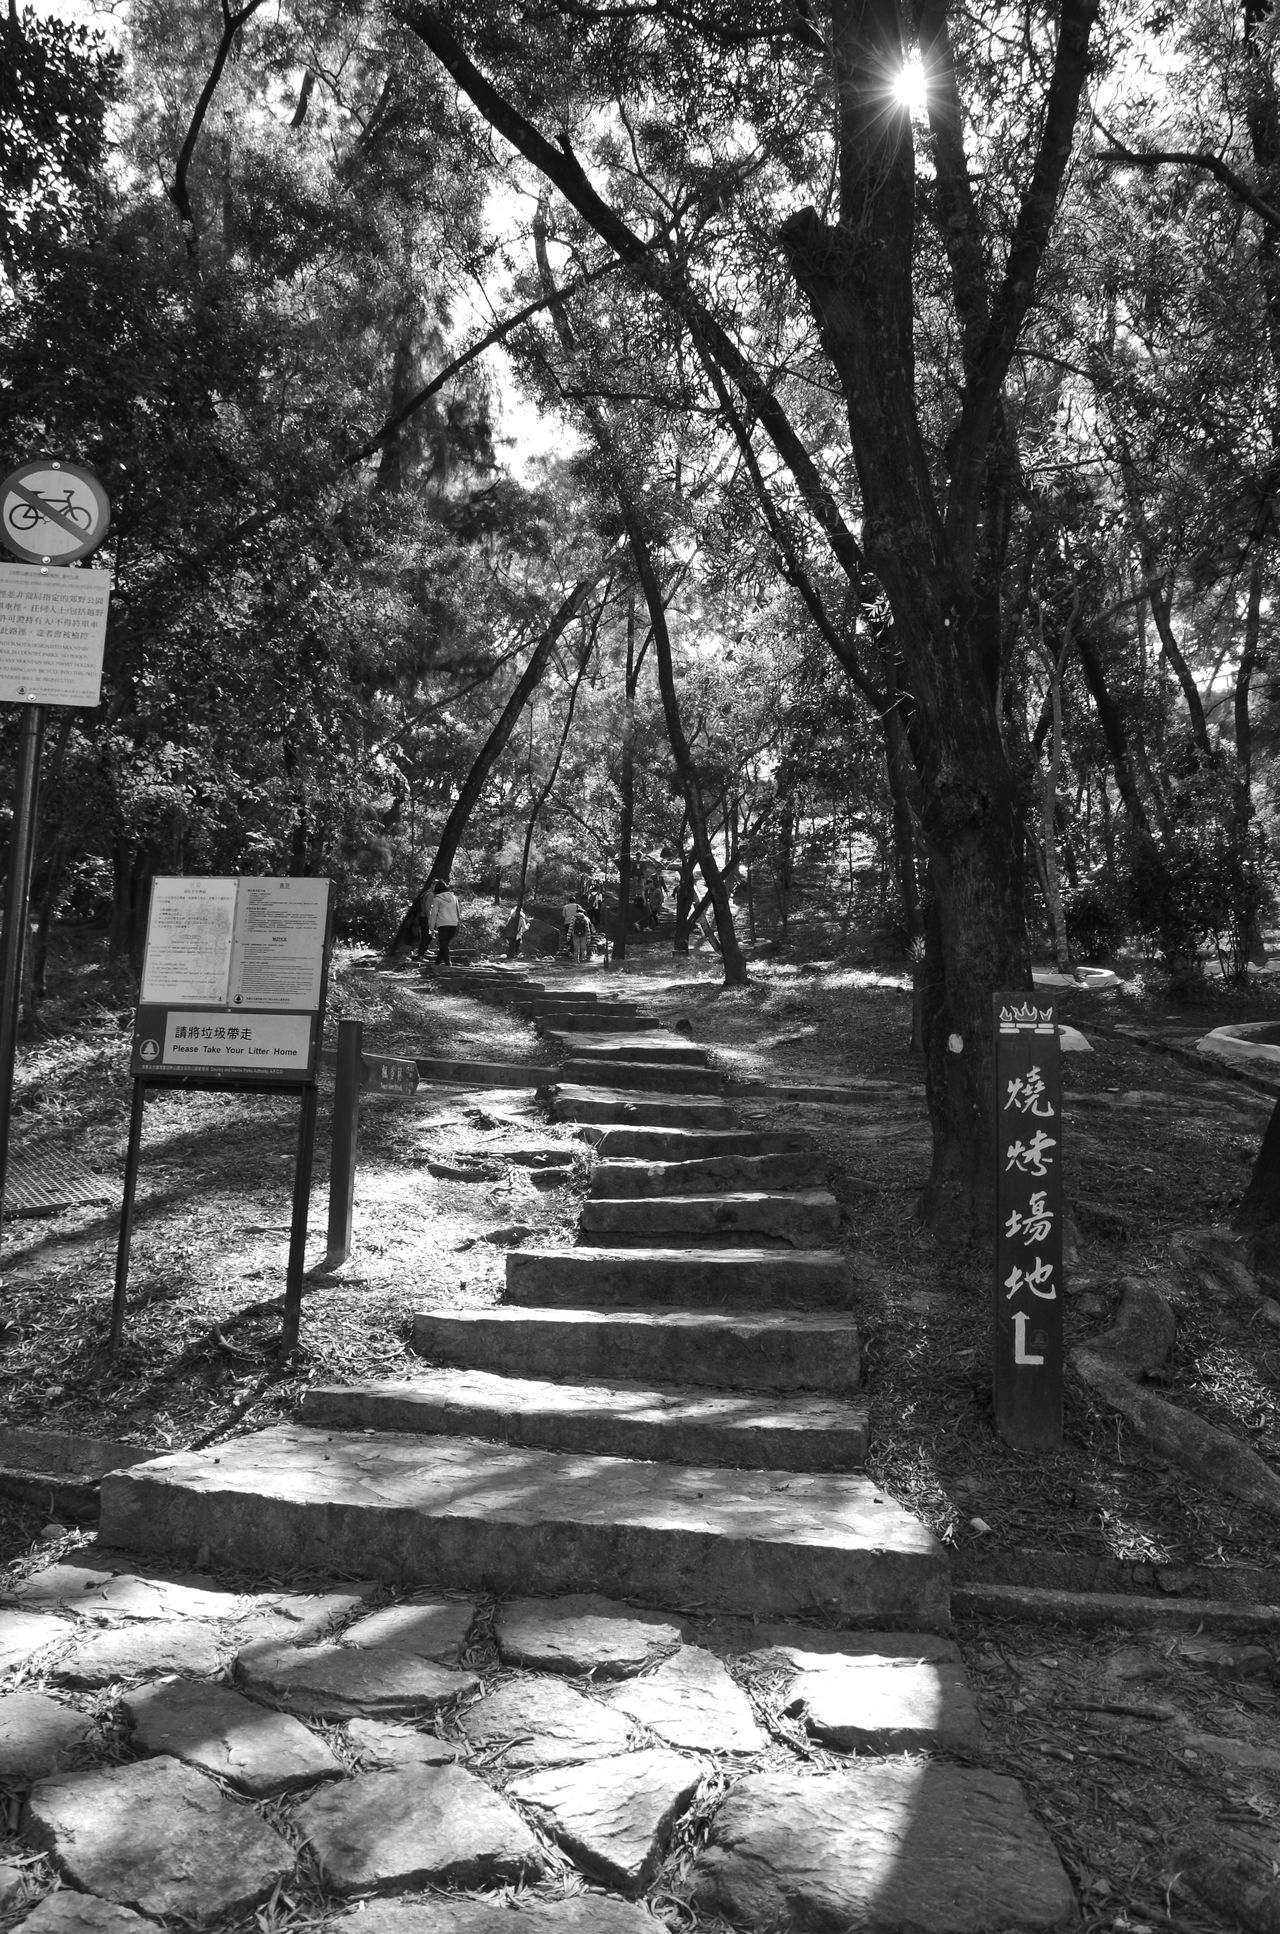 Blackandwhite Day DSLR Hong Kong Nature Outdoors Park - Man Made Space Pentax Steps Sunlight ☀ Tree Monochrome Dslrphotography DSLR Photography Bnw_collection Nature On Your Doorstep Eyeem Philippines